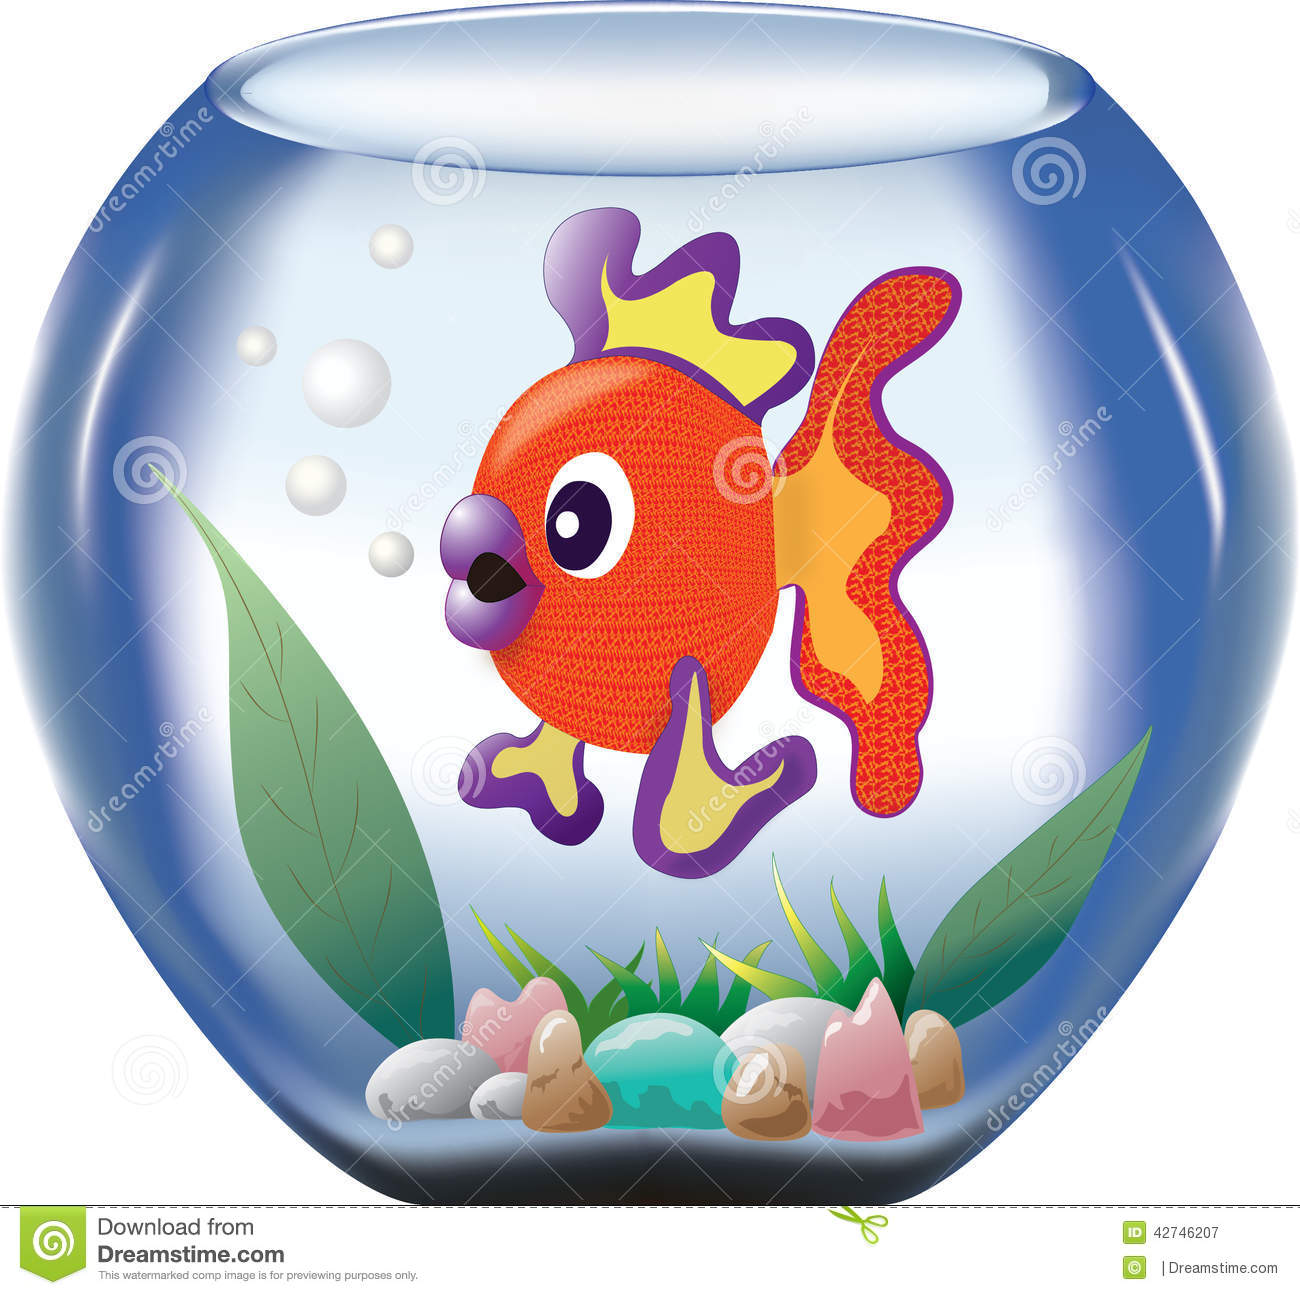 Big orange fish in a bowl stock illustration. Illustration of ...